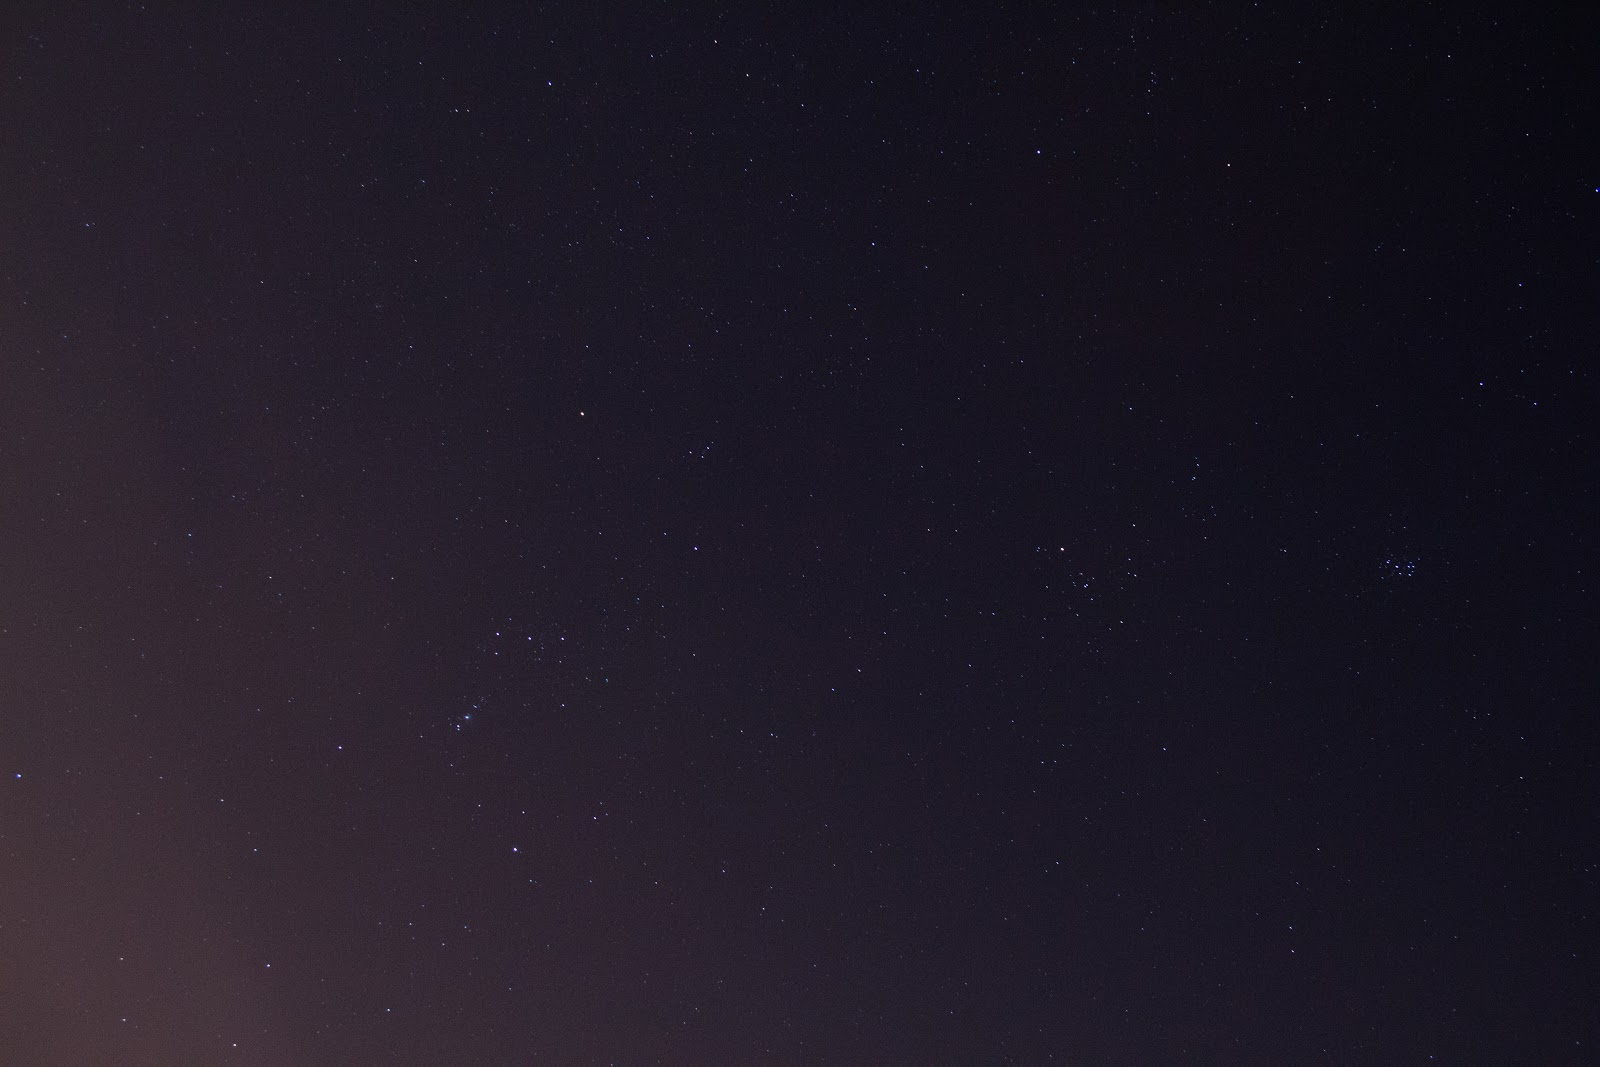 orion and other stars in the night sky